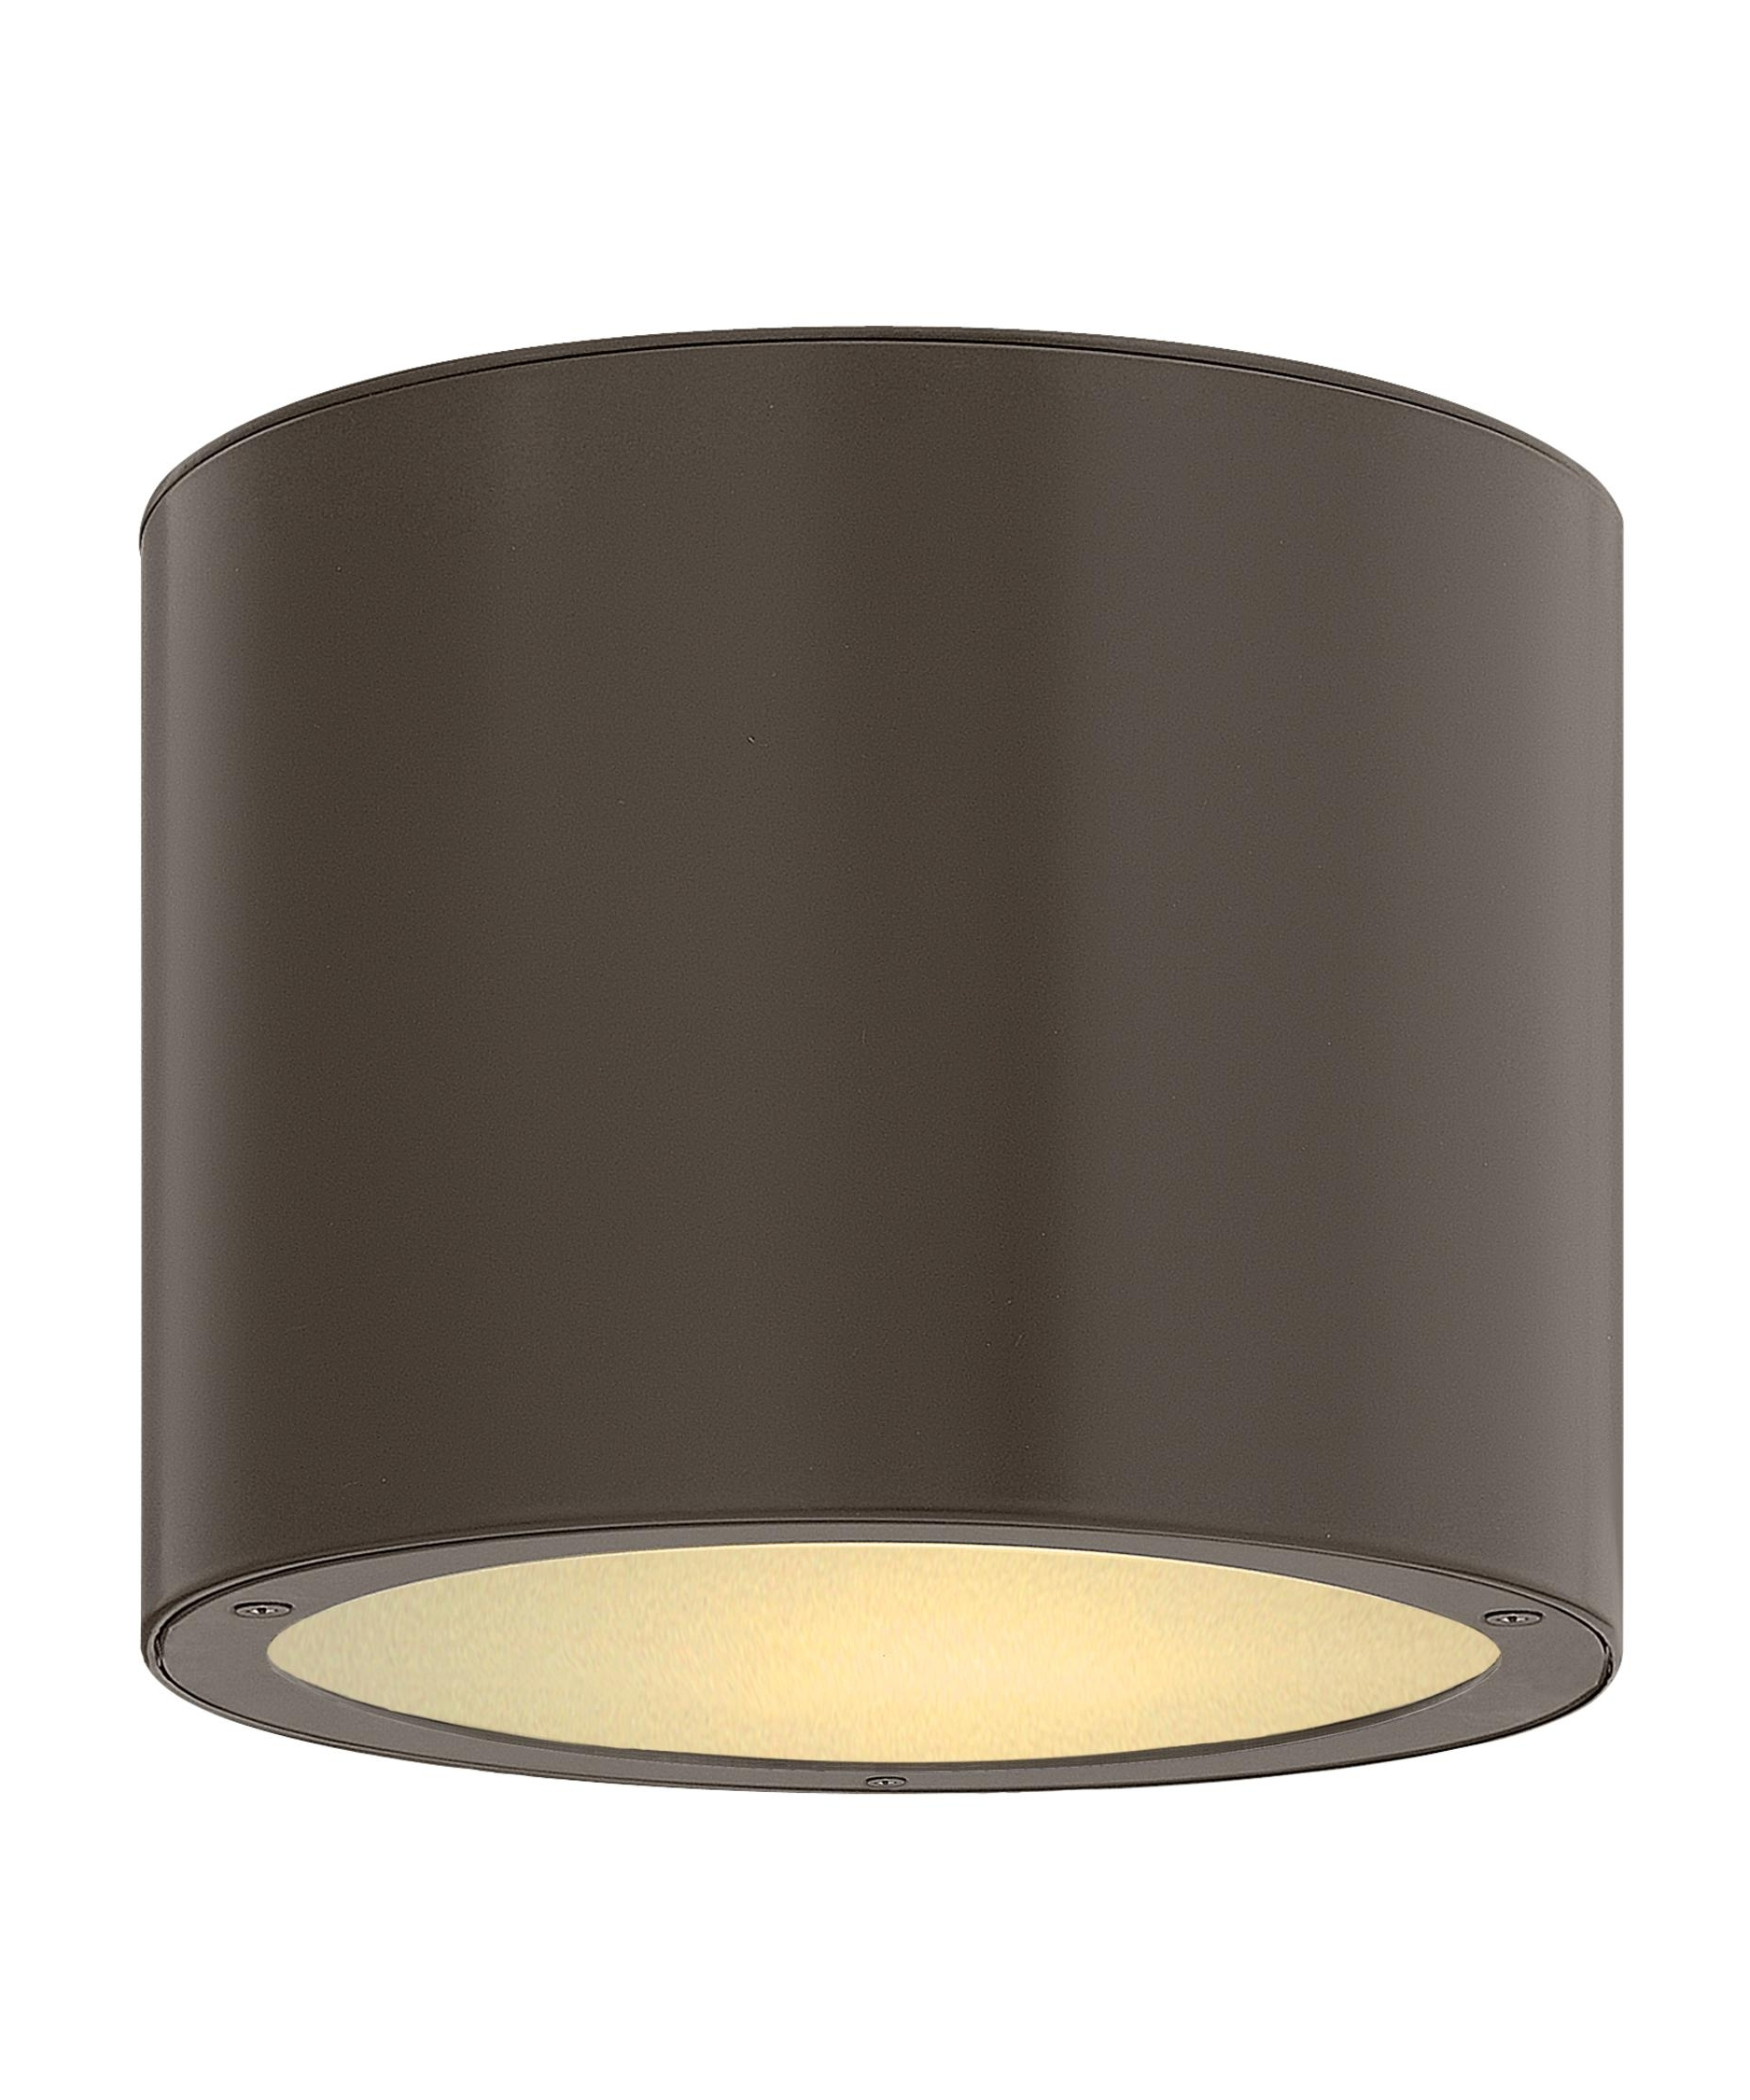 Hinkley Lighting 1663 Luna 8 Inch Wide 1 Light Outdoor Flush Mount Intended For Well Liked Outdoor Ceiling Lights (View 6 of 20)